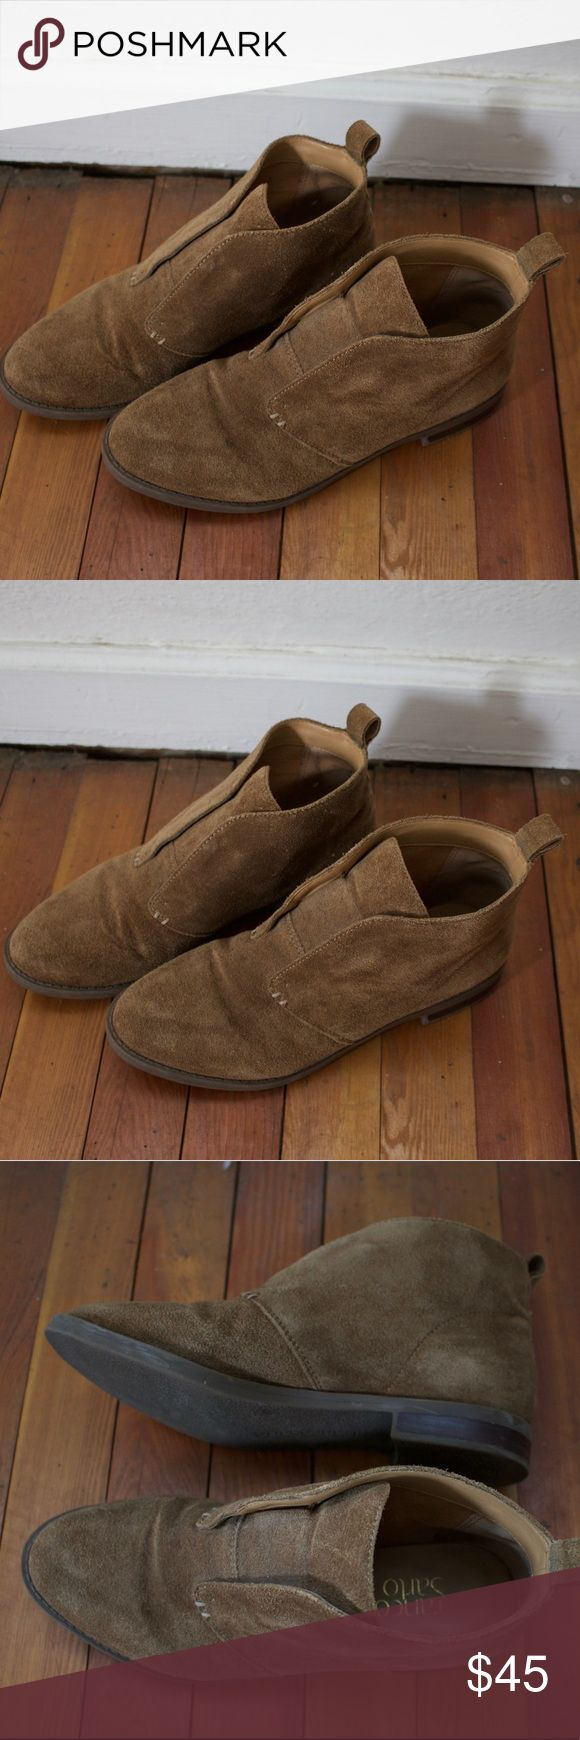 Franco Sarto shoes Tan Franco Sarto suede flats/ loafers. Super comfy, great condition only worn once! Franco Sarto Shoes Flats & Loafers